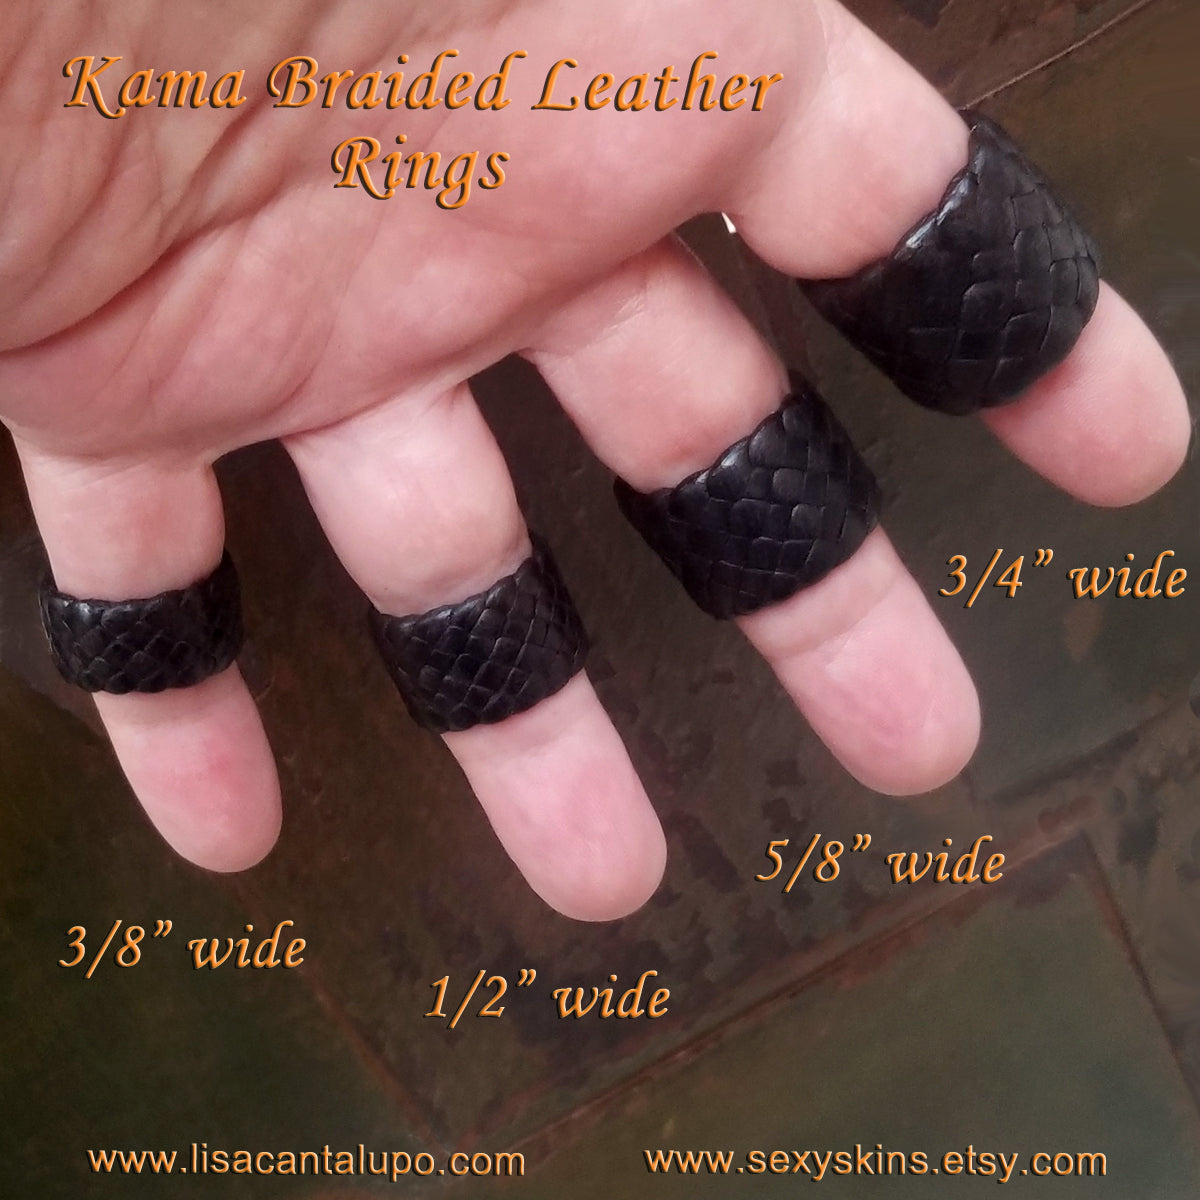 "Kama Braided Leather Rings in the available widths; 3/8"", 1/2"", 5/8"", and 3/4"" on model"